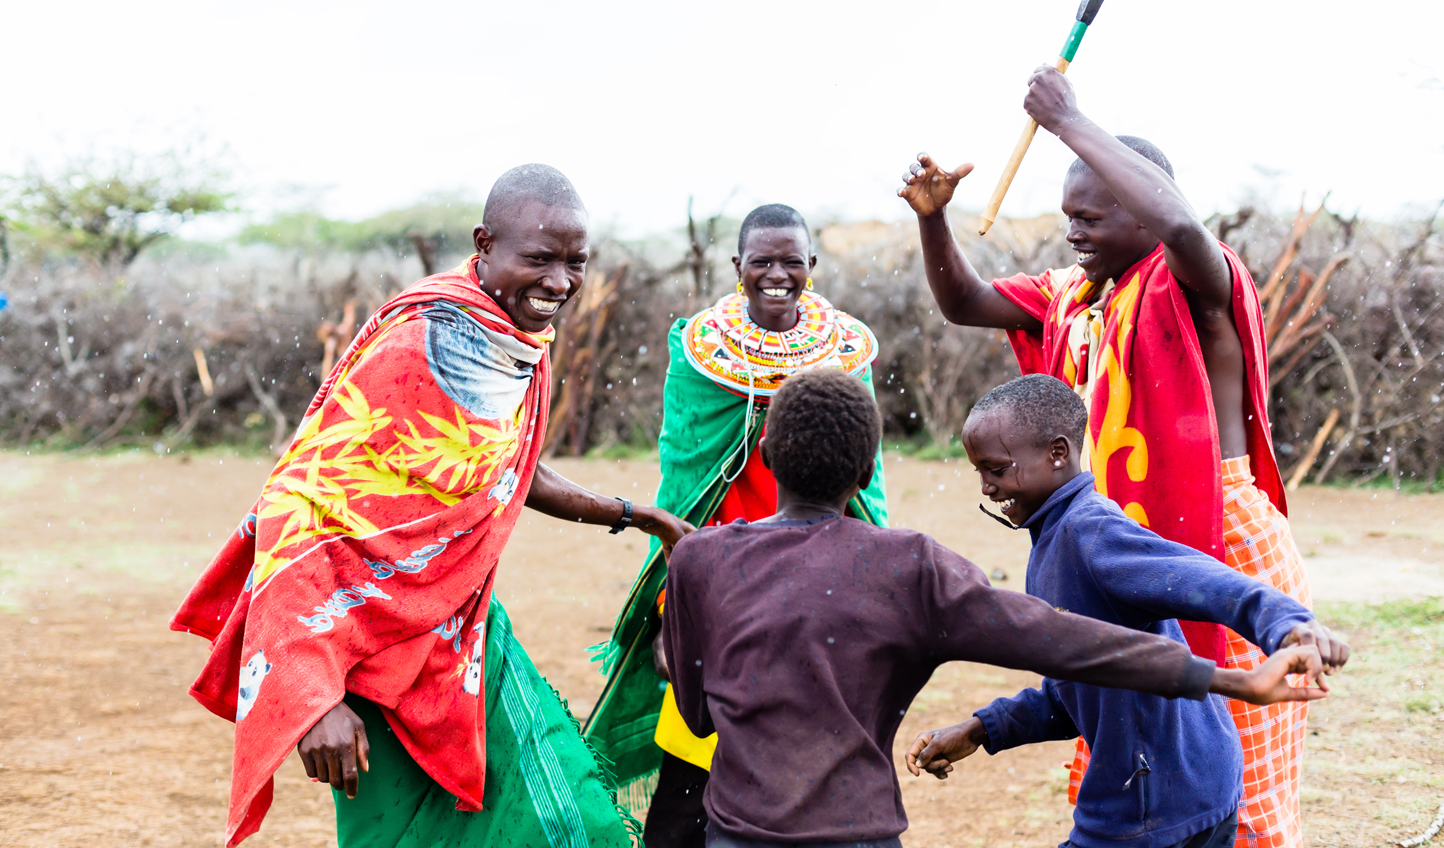 Discover the colourful culture of the Maasai